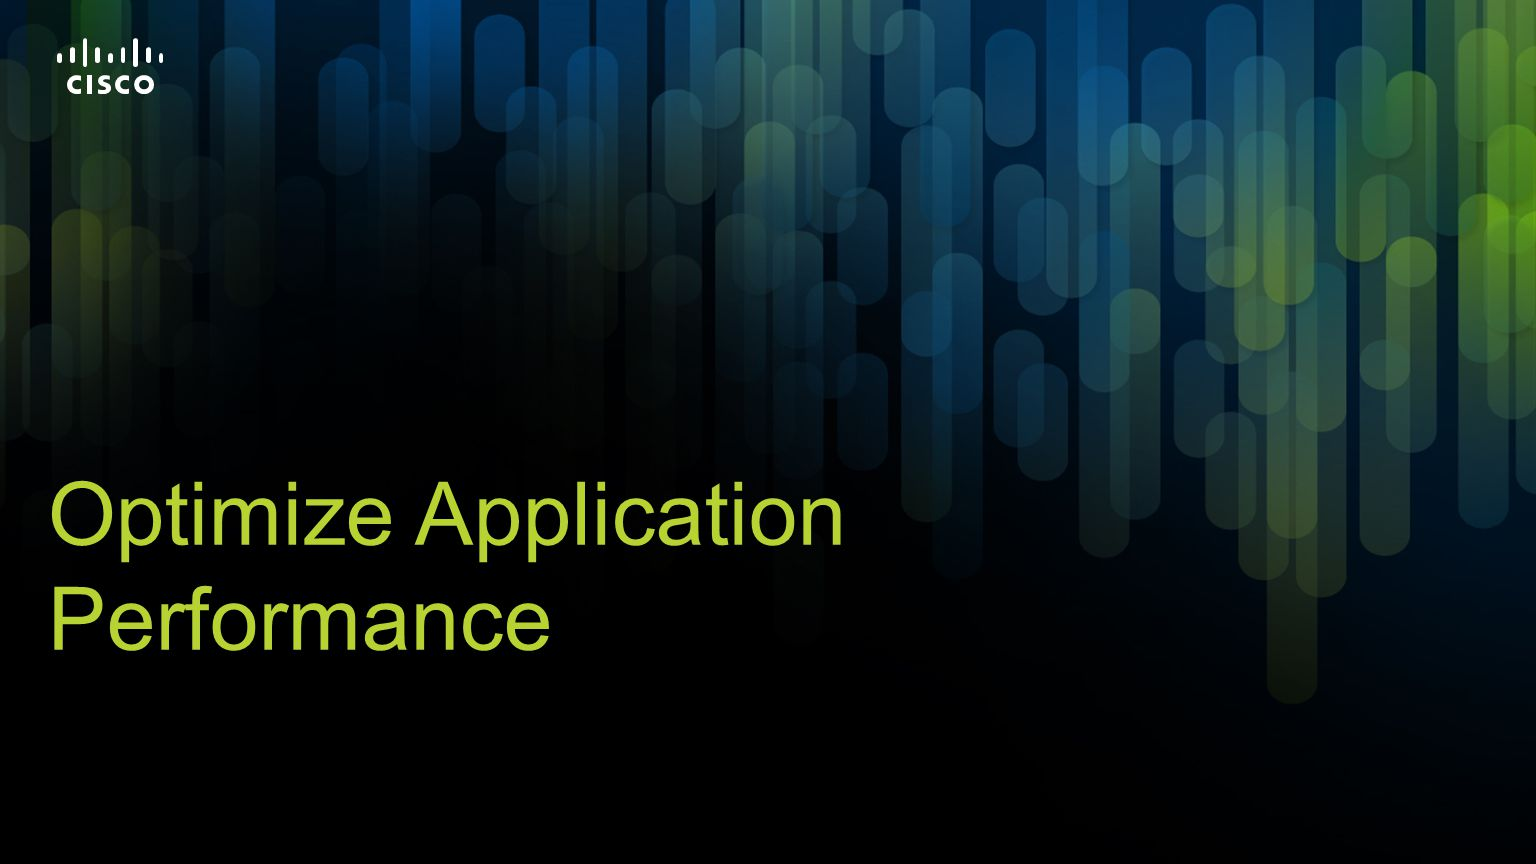 Optimize Application Performance